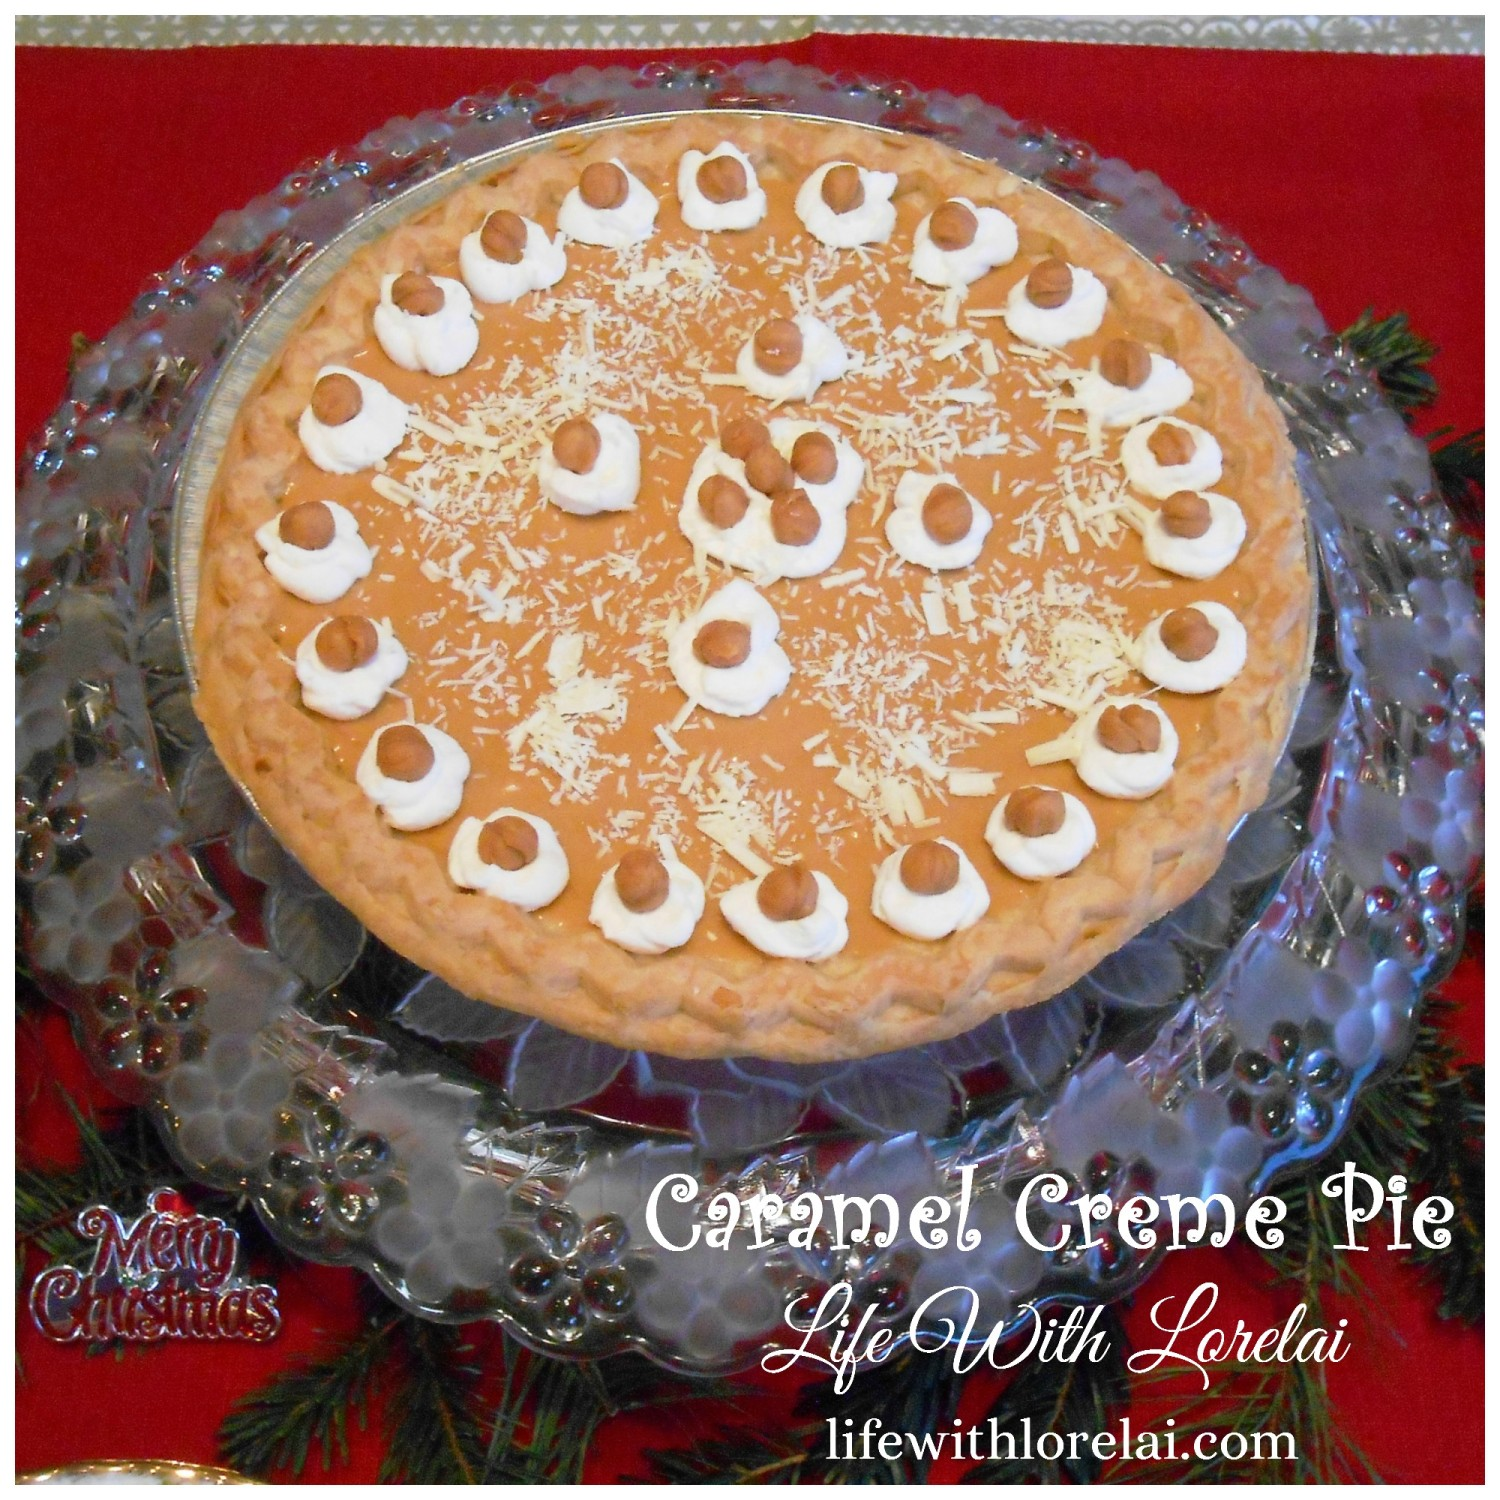 Caramel Creme Pie Recipe - Inspired by the movie Christmas With The Kranks - Absolutely amazing flavor!